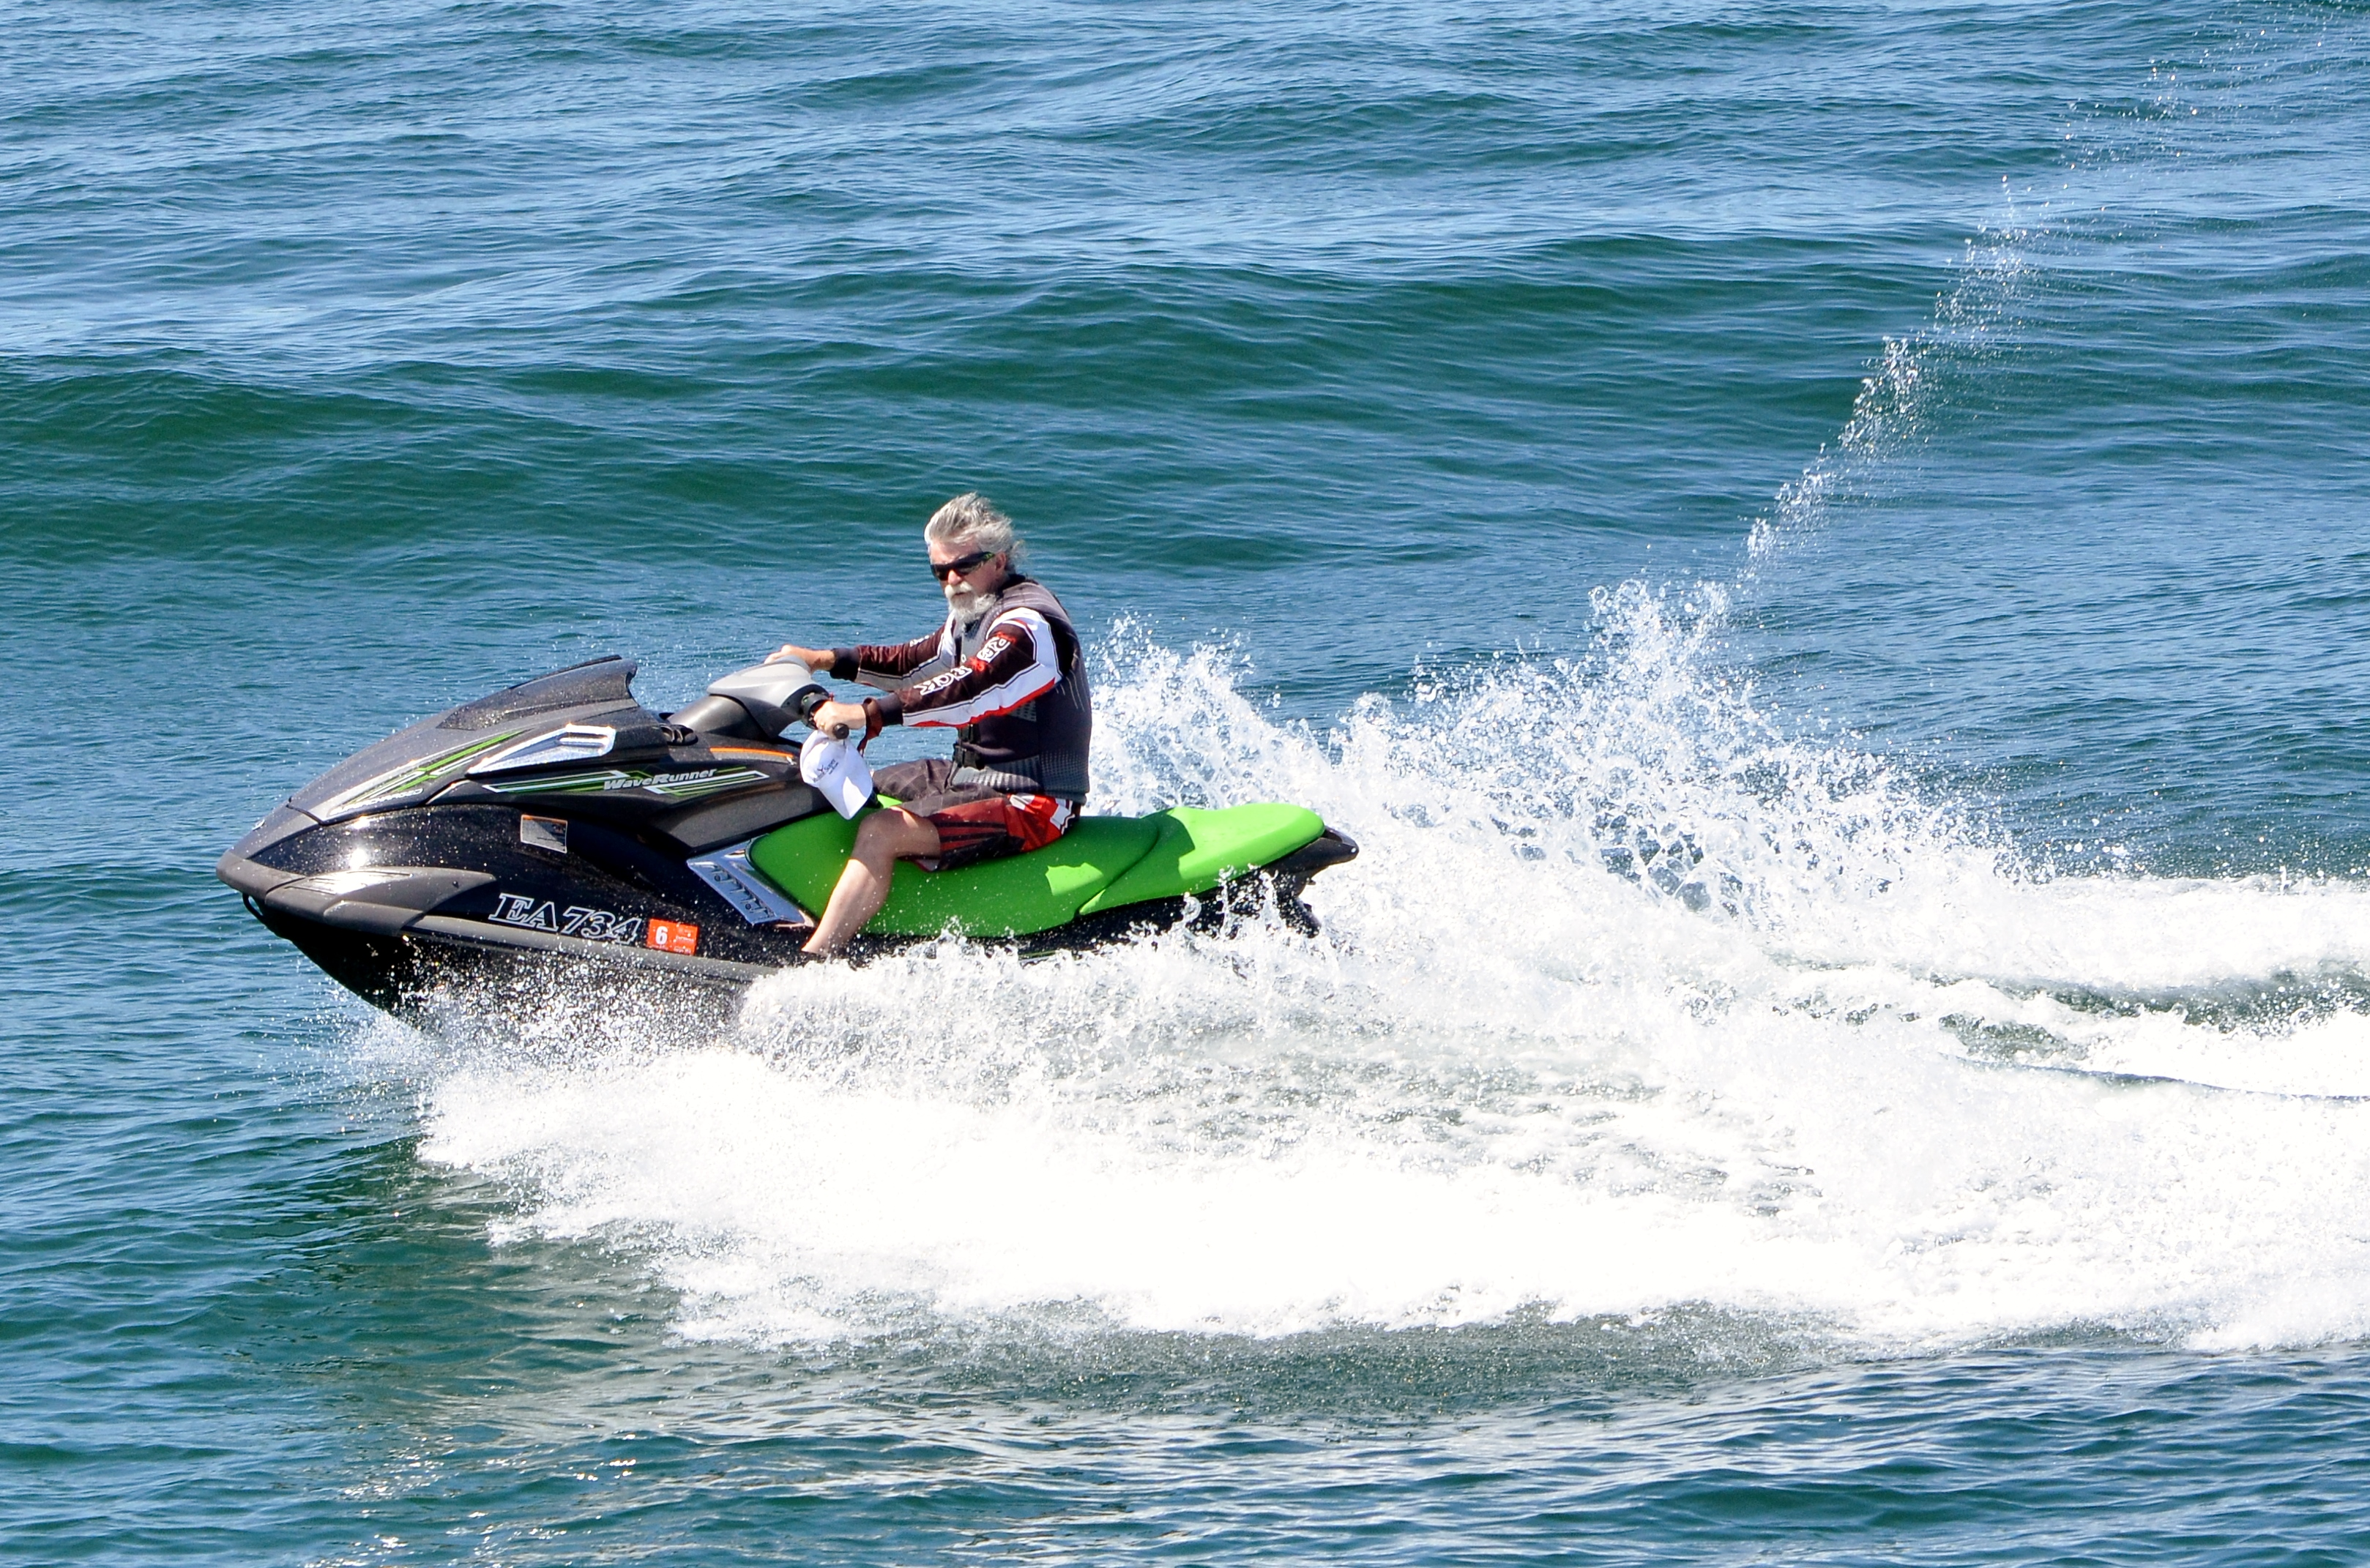 WaveRunner - Wikipedia